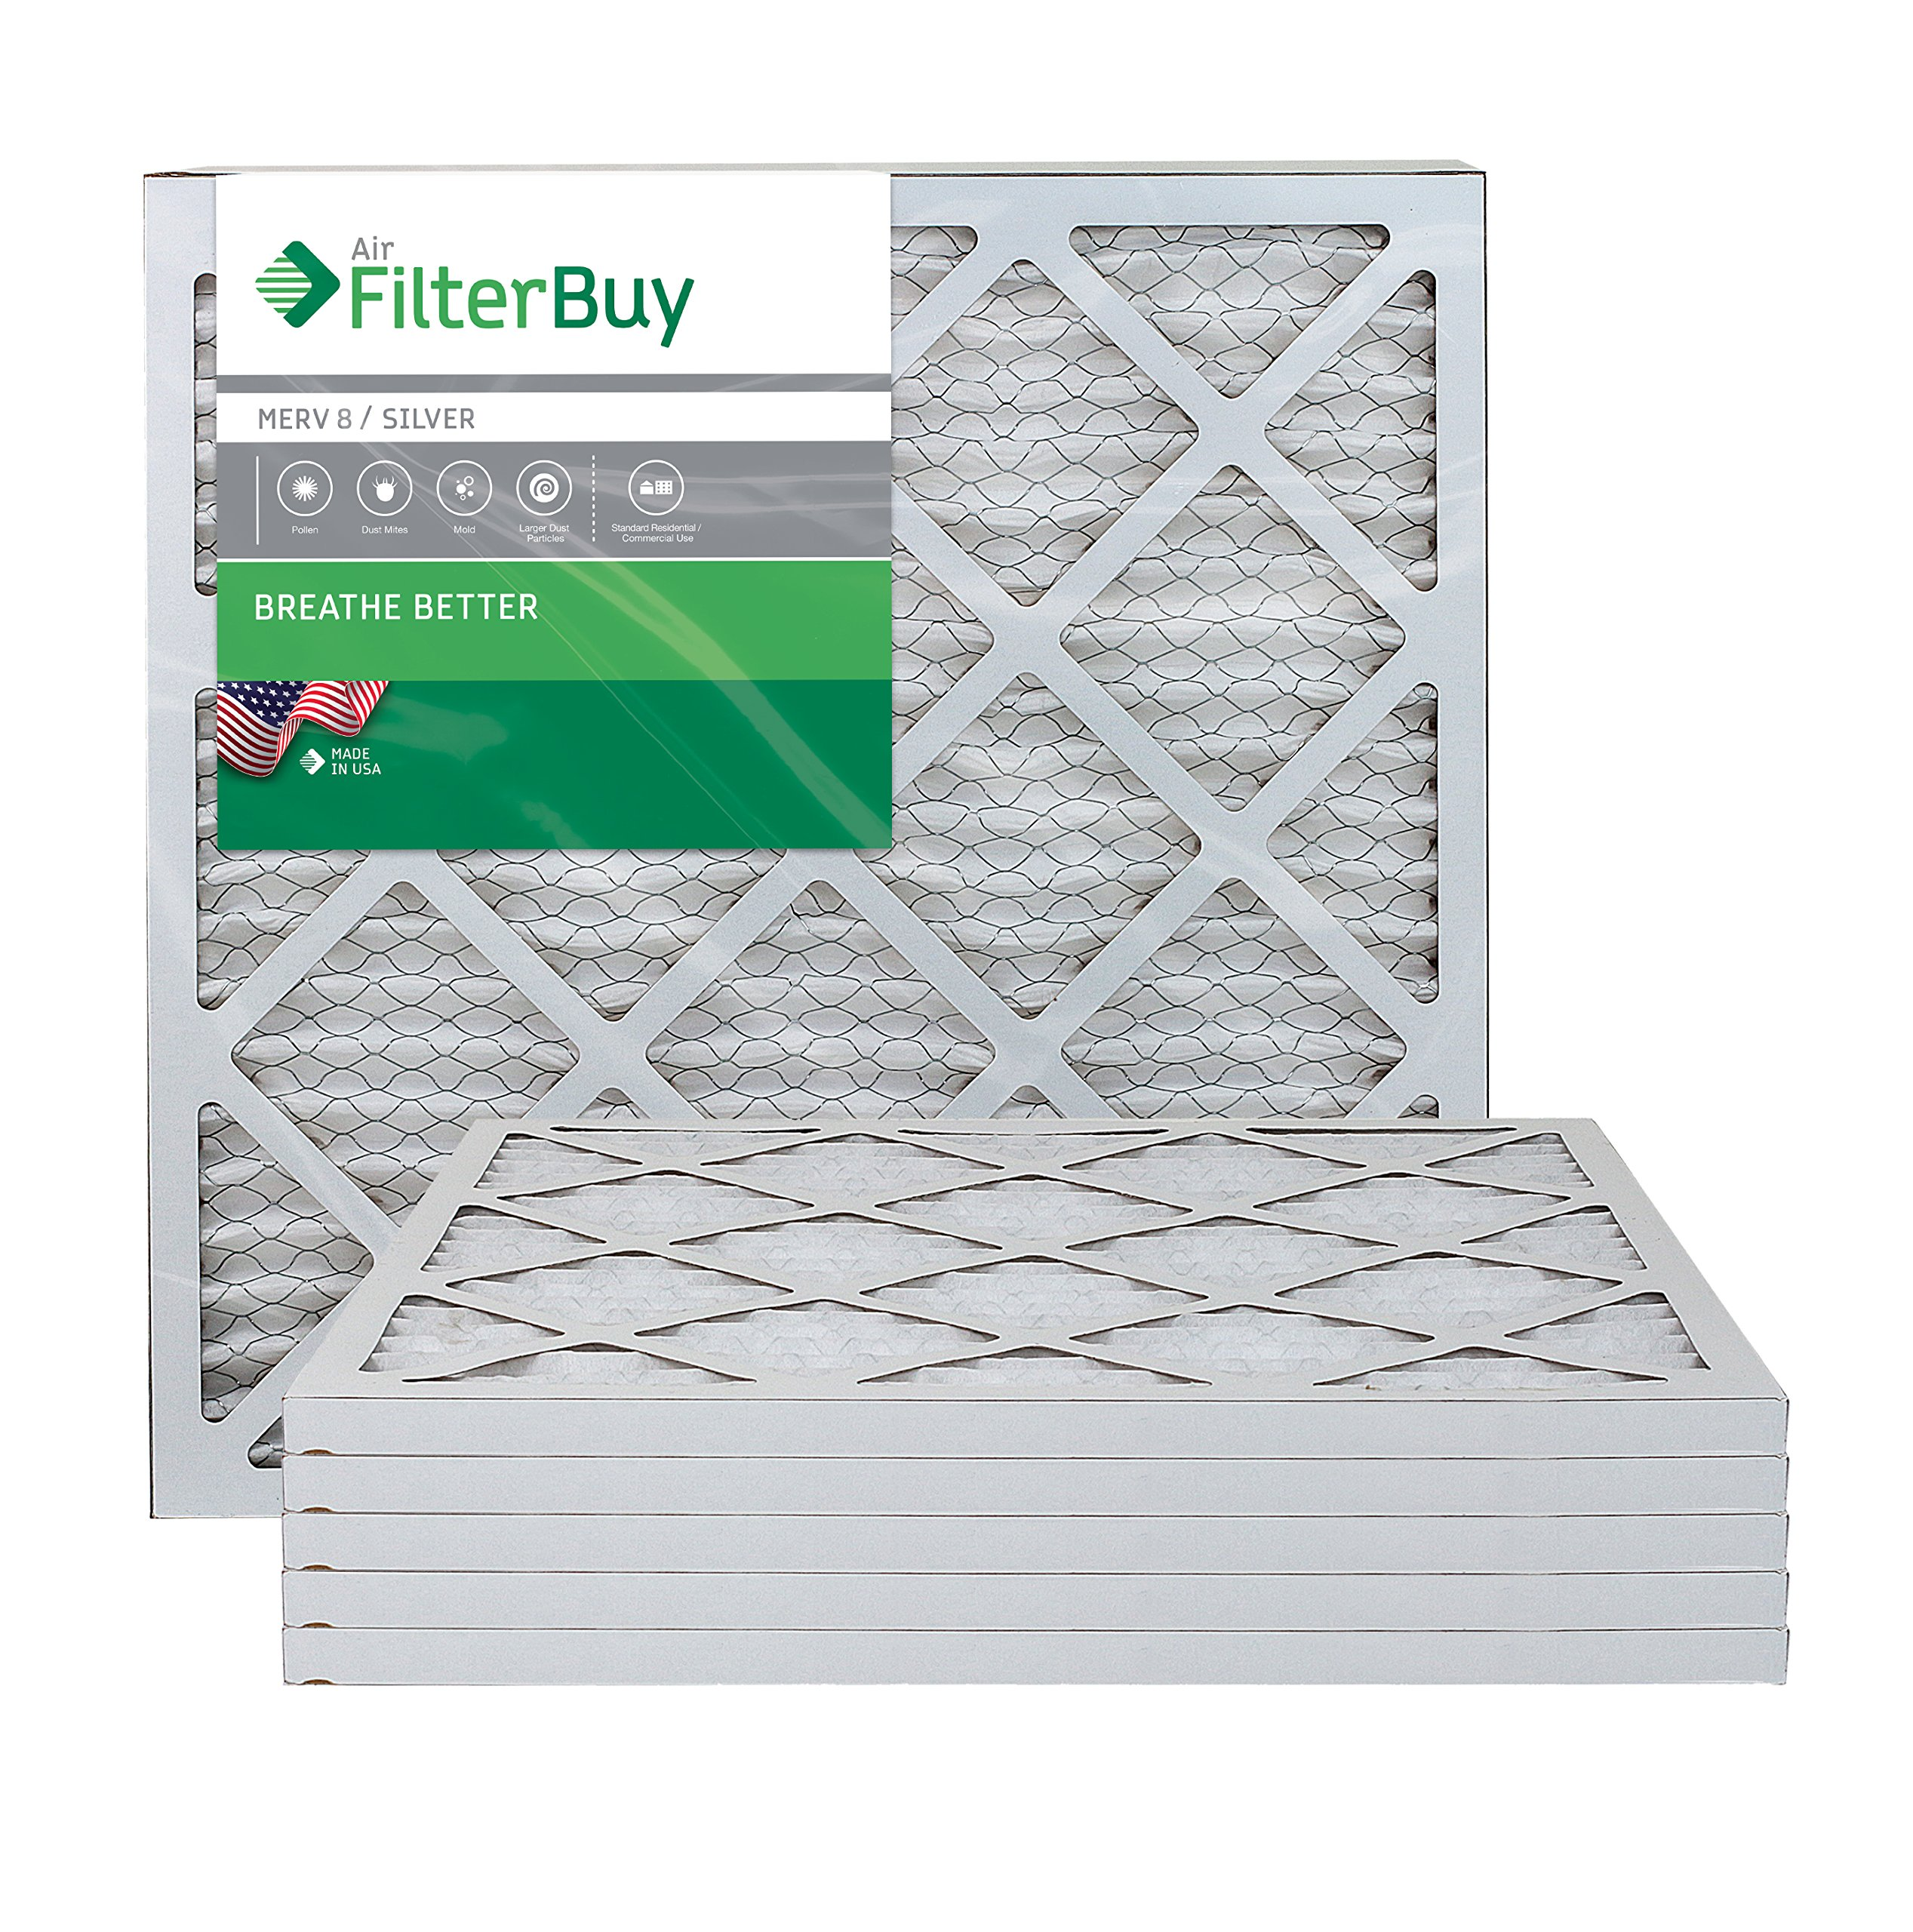 FilterBuy AFB Silver MERV 8 20x20x1 Pleated AC Furnace Air Filter. Pack of 6 Filters. 100% produced in the USA. by FilterBuy